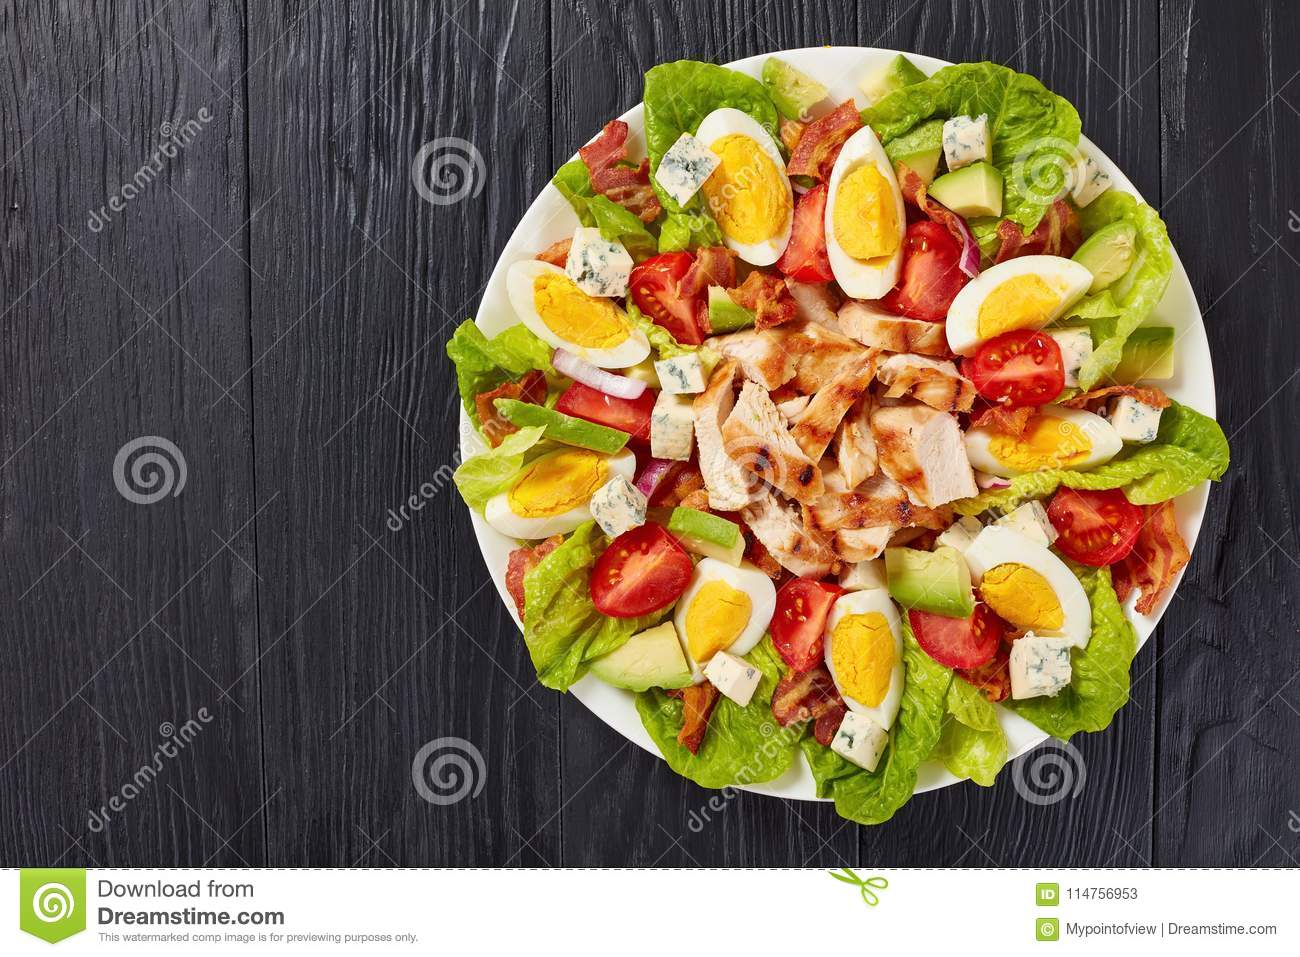 Delicious american cobb salad on plate